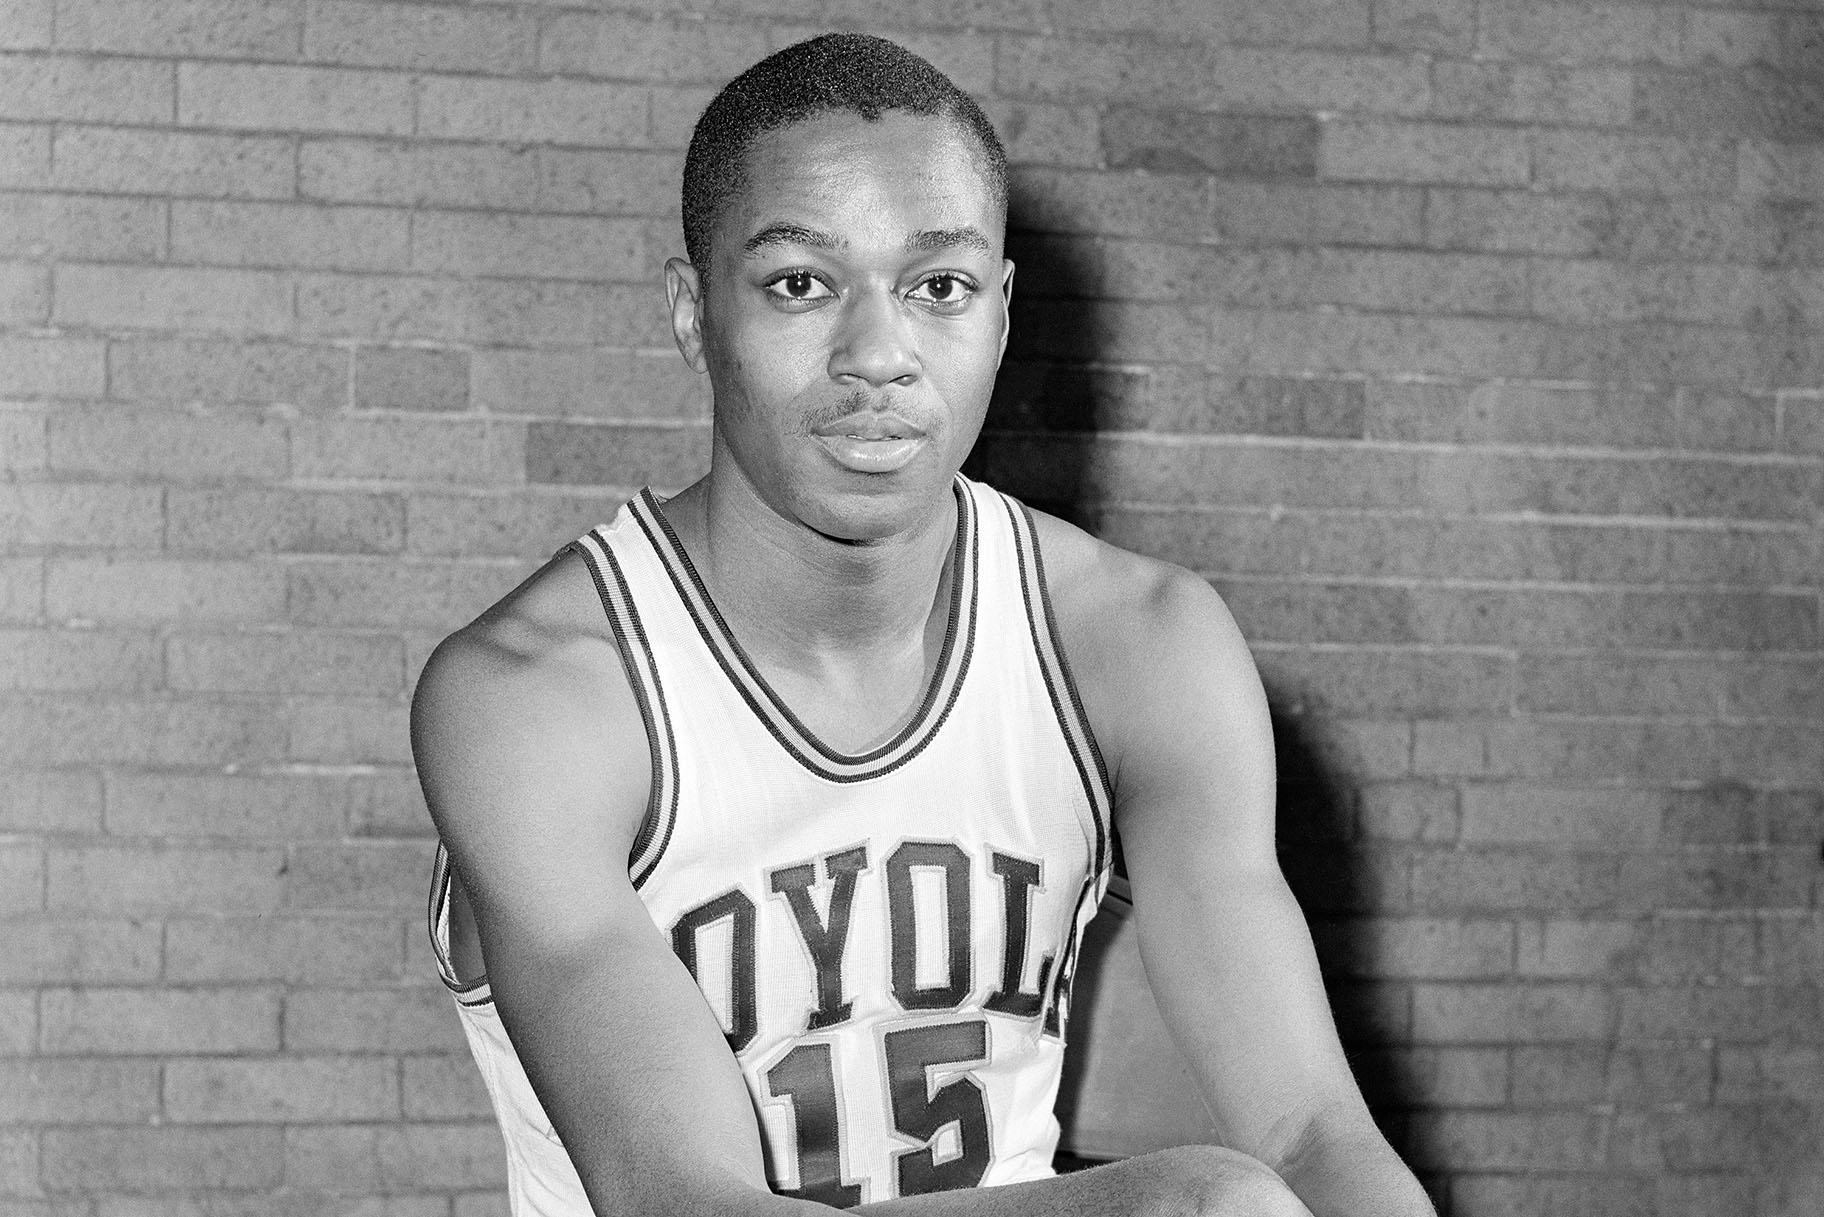 This is a file photo from February 20, 1963 showing Loyola University basketball player Jerry Harkness.  (AP Photo / Paul Cannon, File)